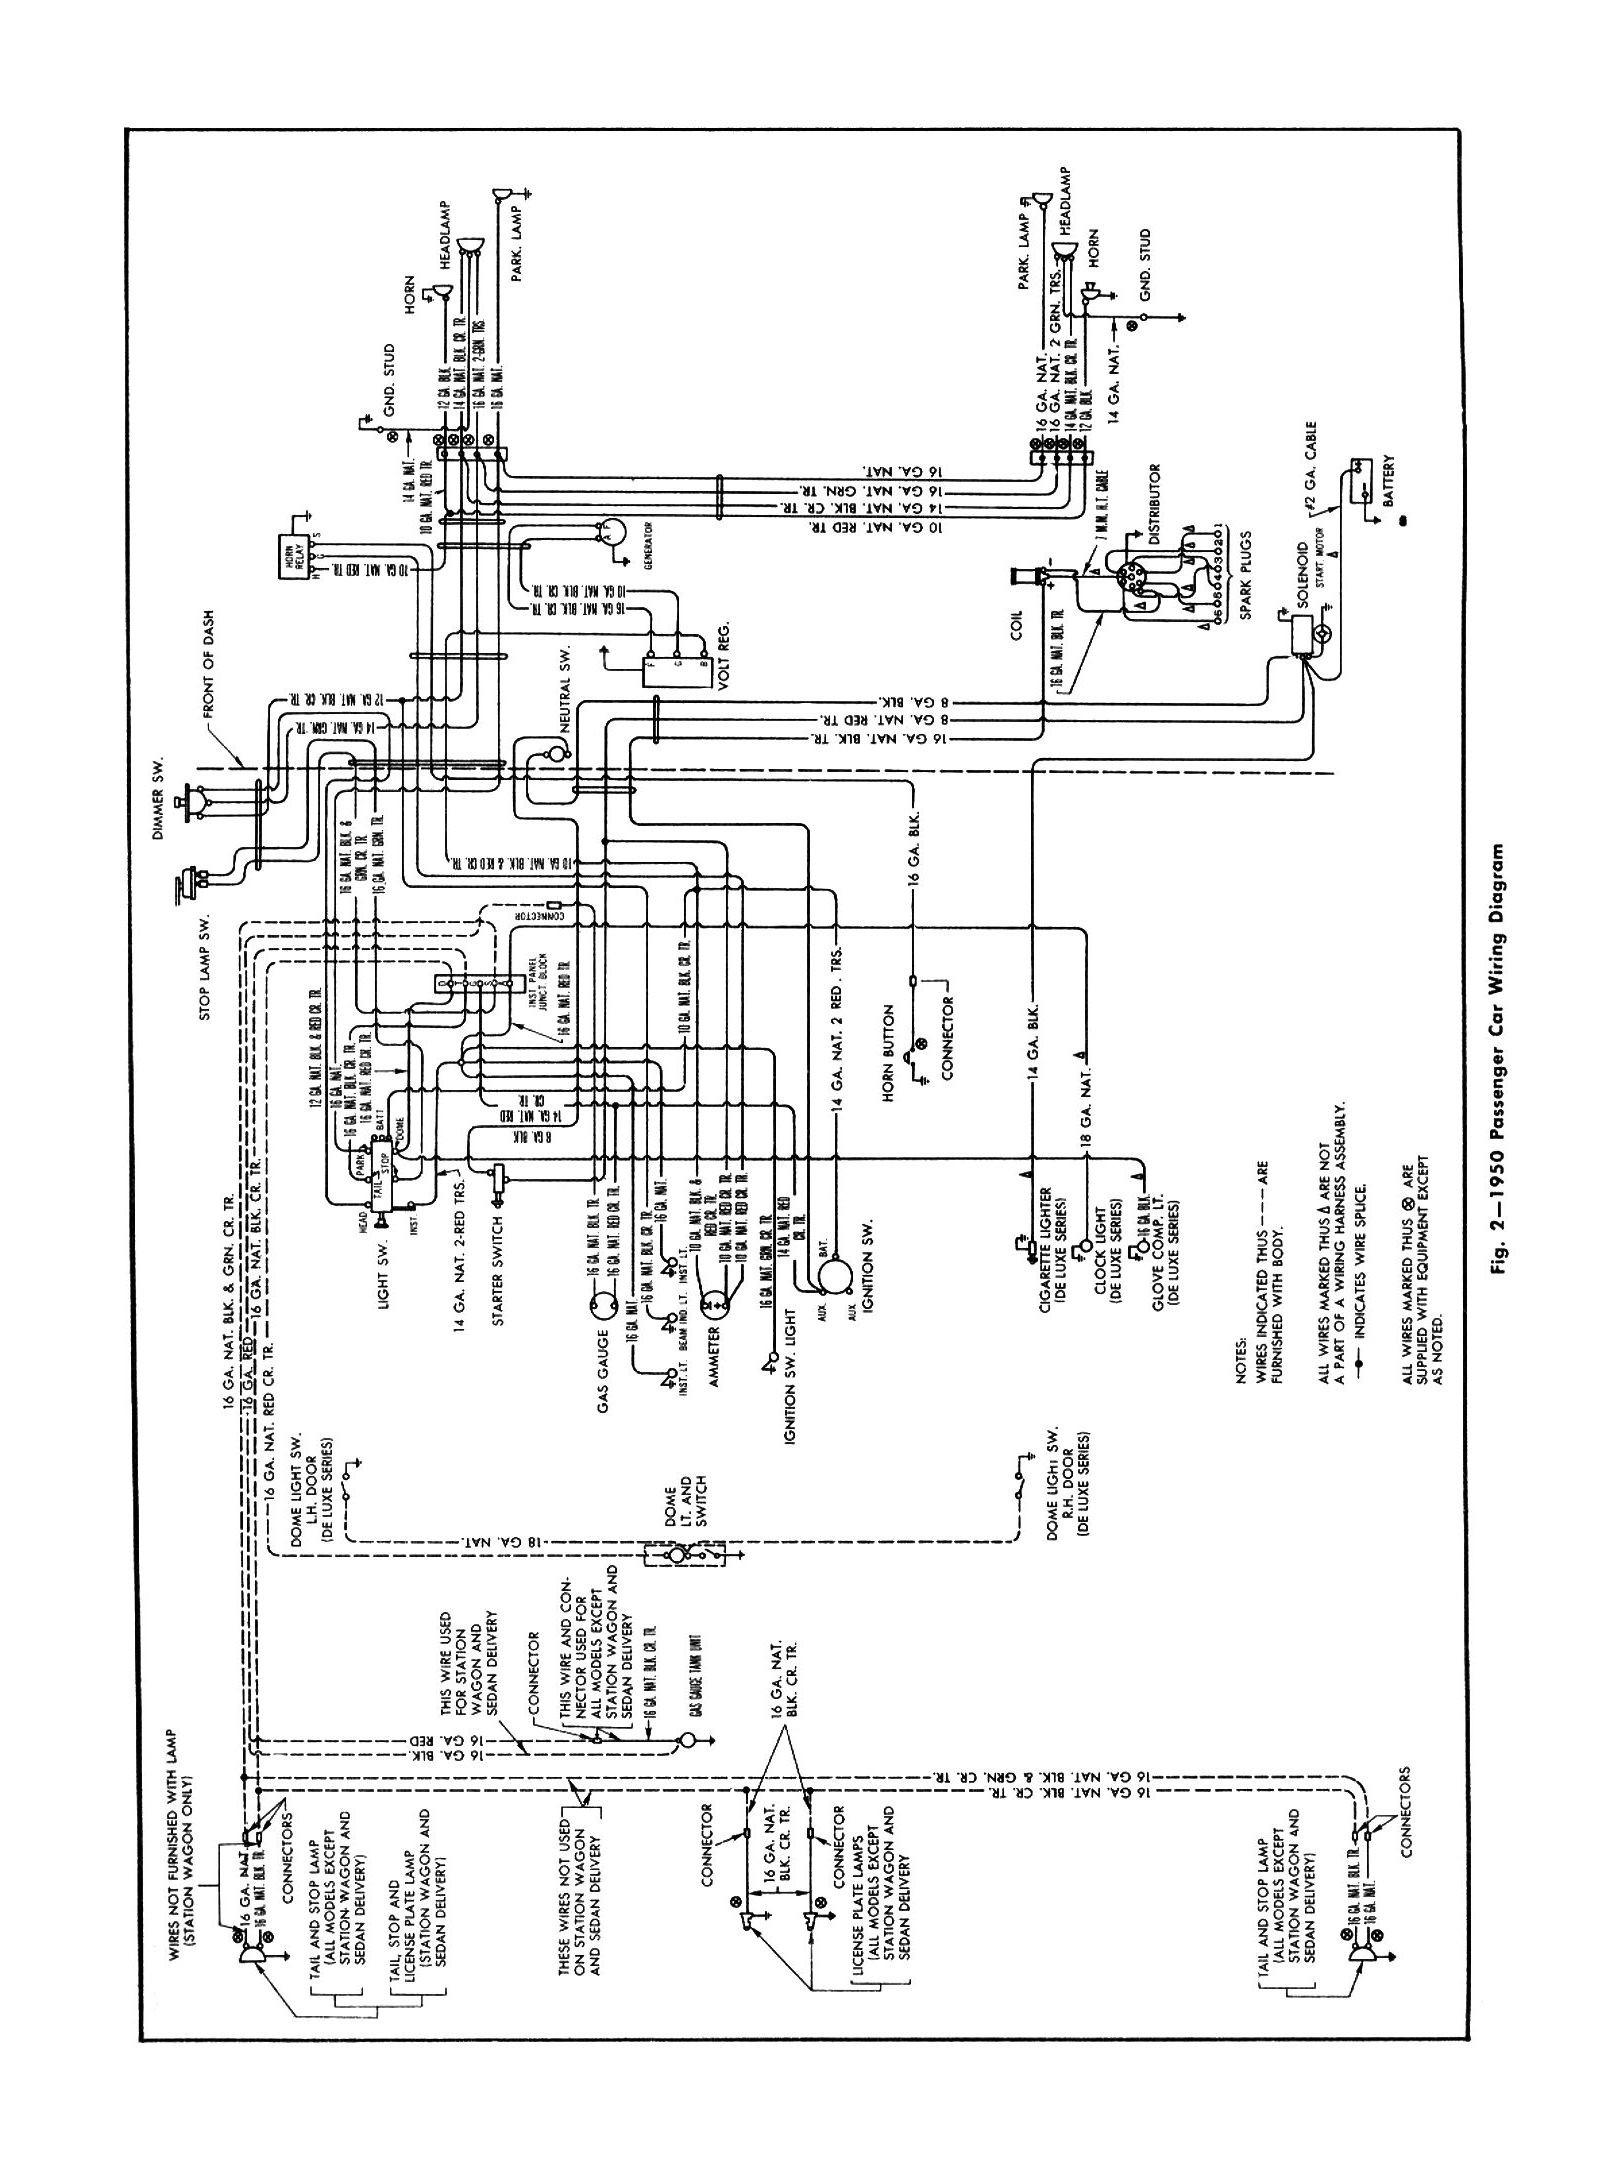 1952 Ford Wiring Diagram Archive Of Automotive 8n Harness 1950 Hudson Simple Rh David Huggett Co Uk F1